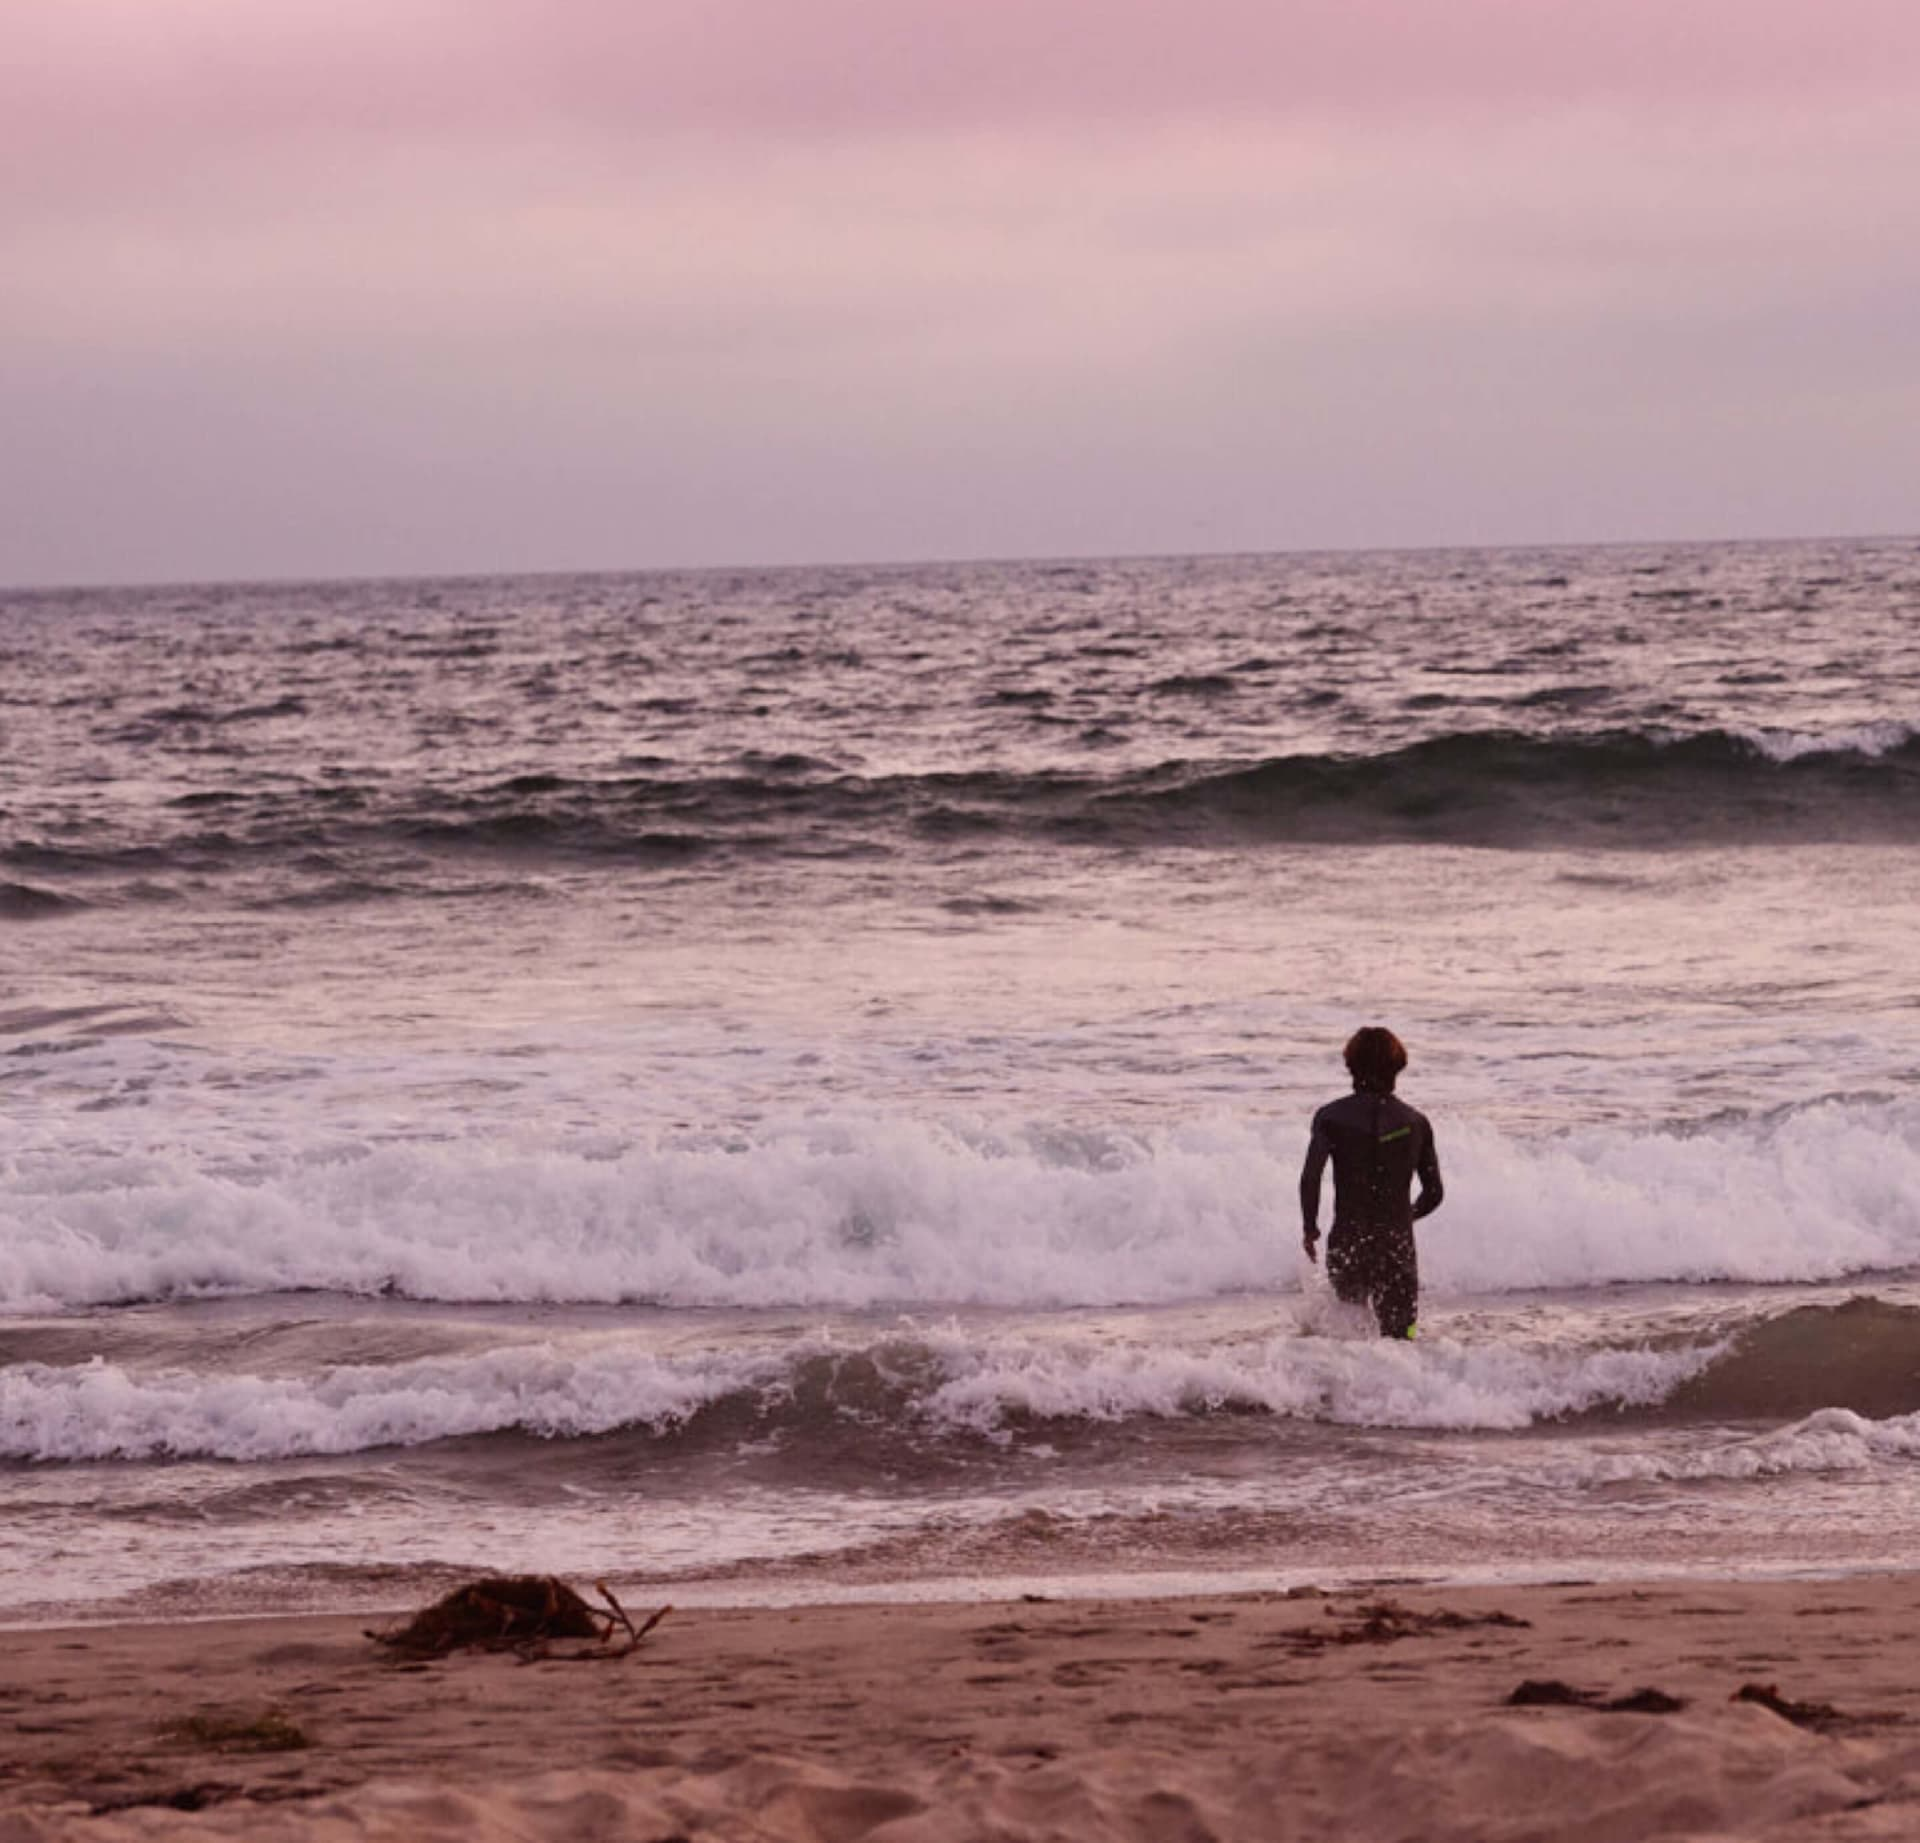 The California shoreline under a pink sunset sky | Kinship